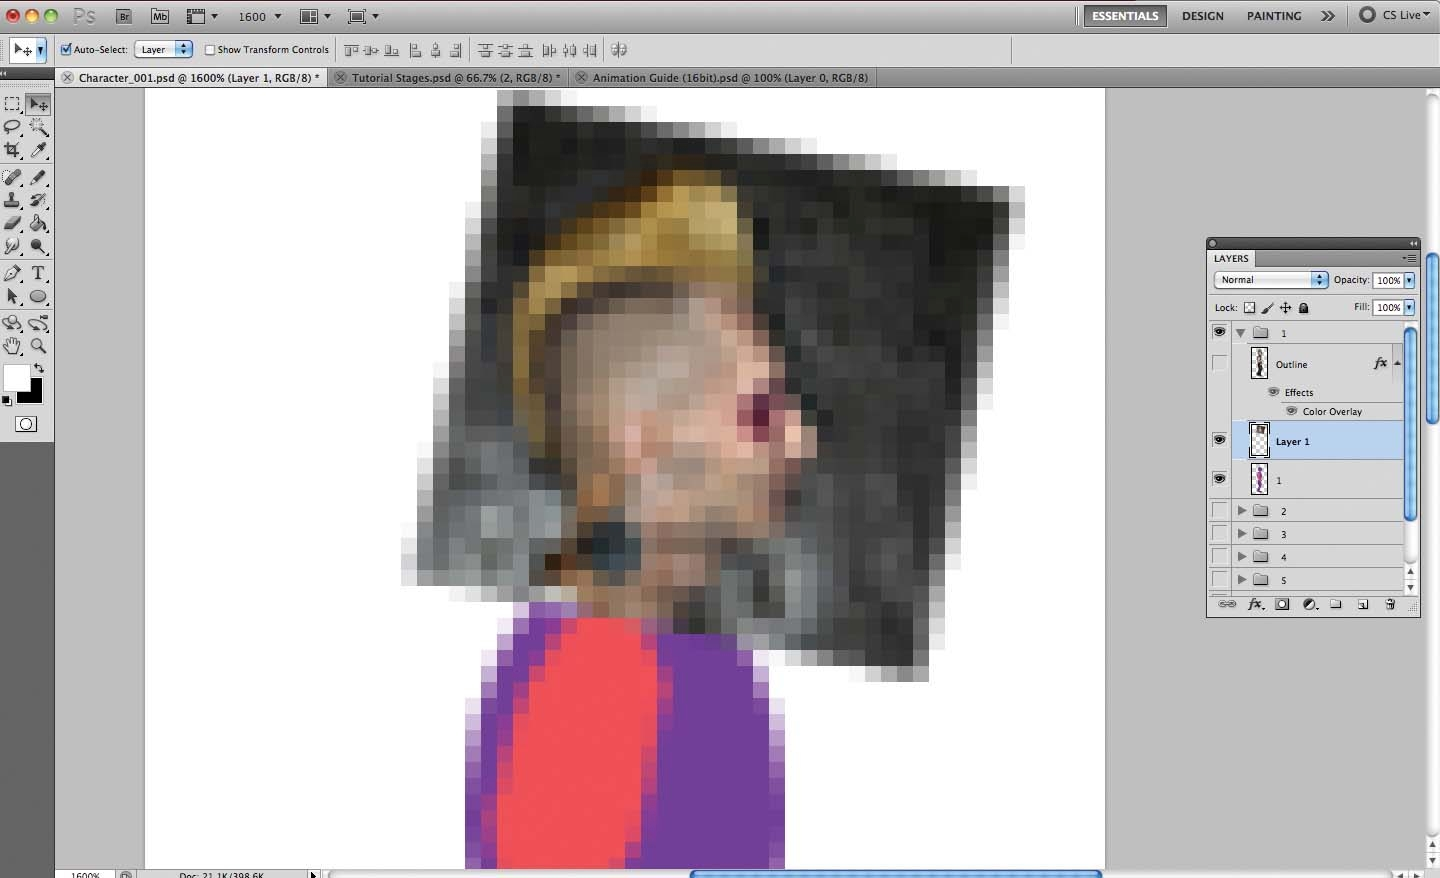 Photoshop tutorial: How to make 16-bit art in Photoshop